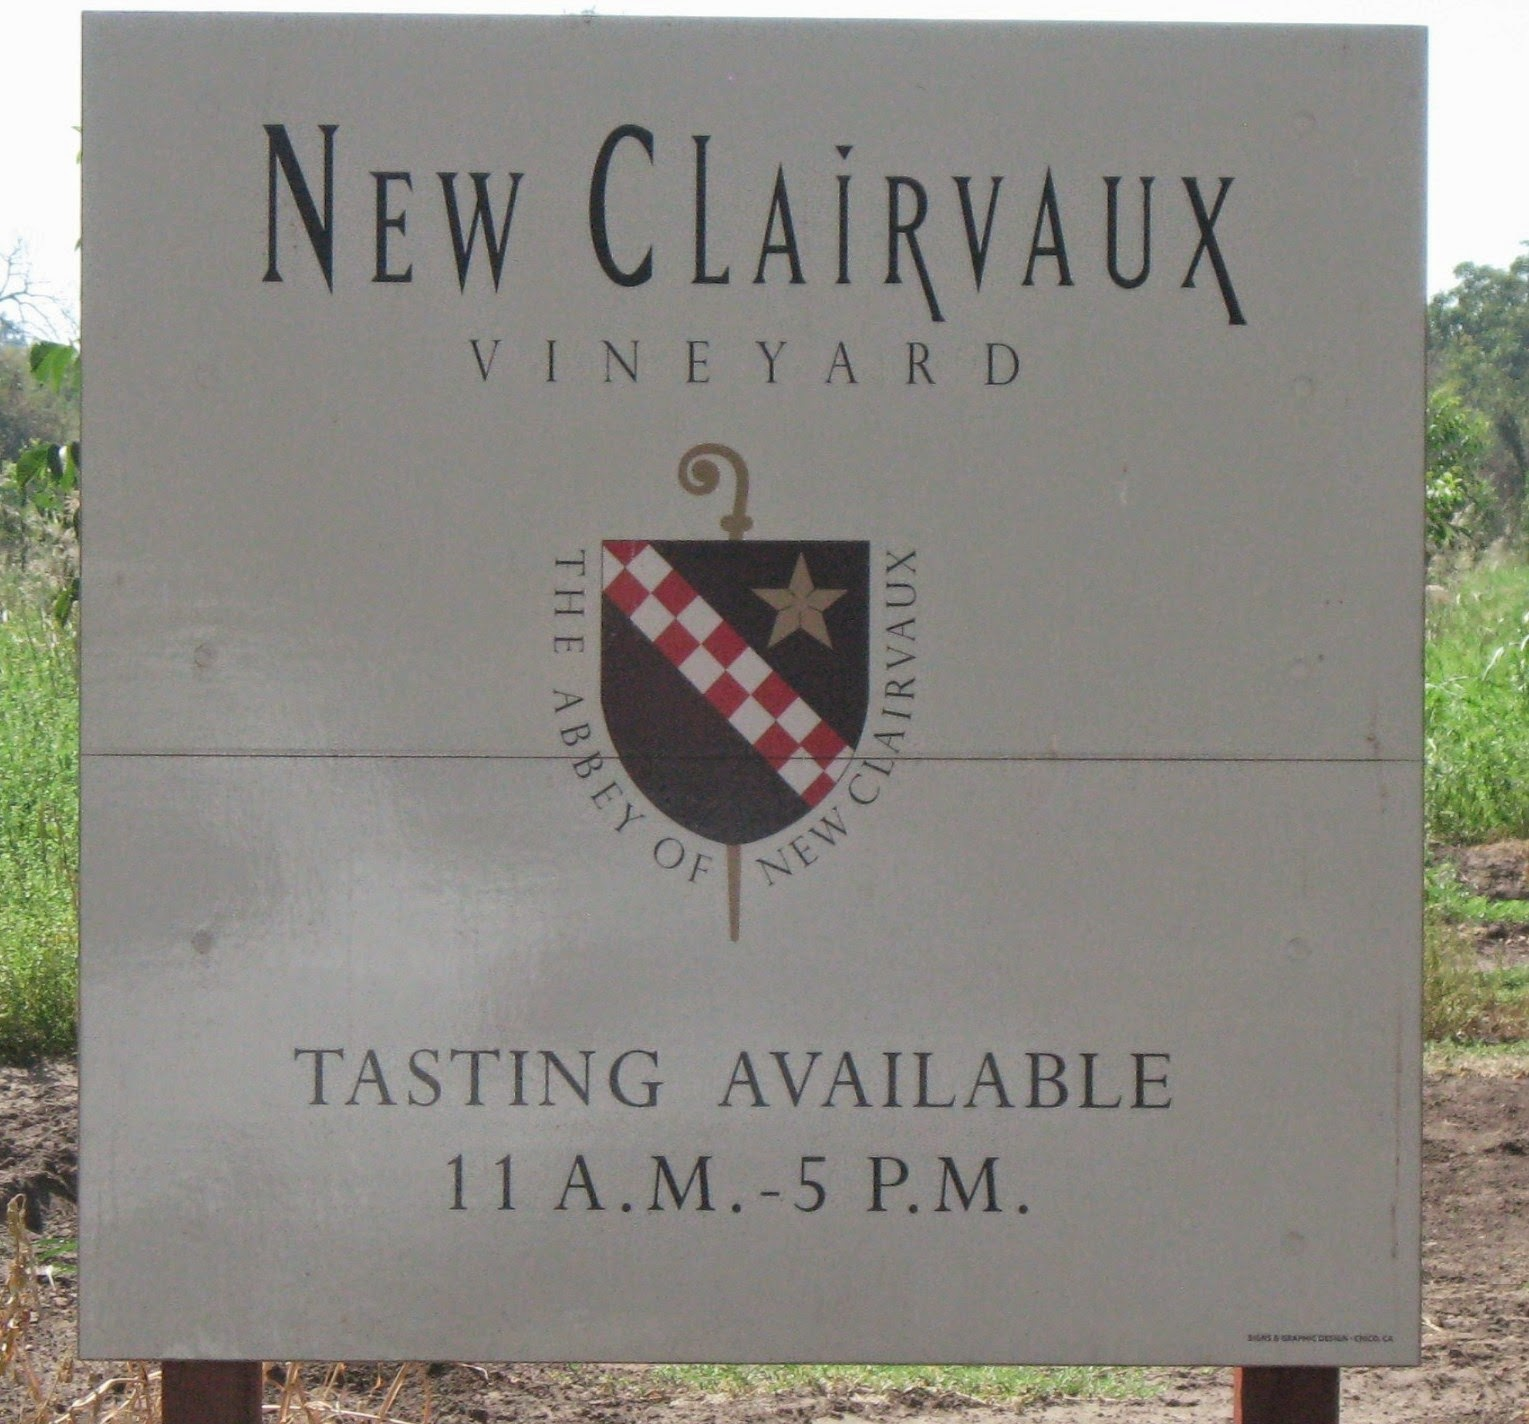 From Whine to Wine at the Abbey of New Clairvaux